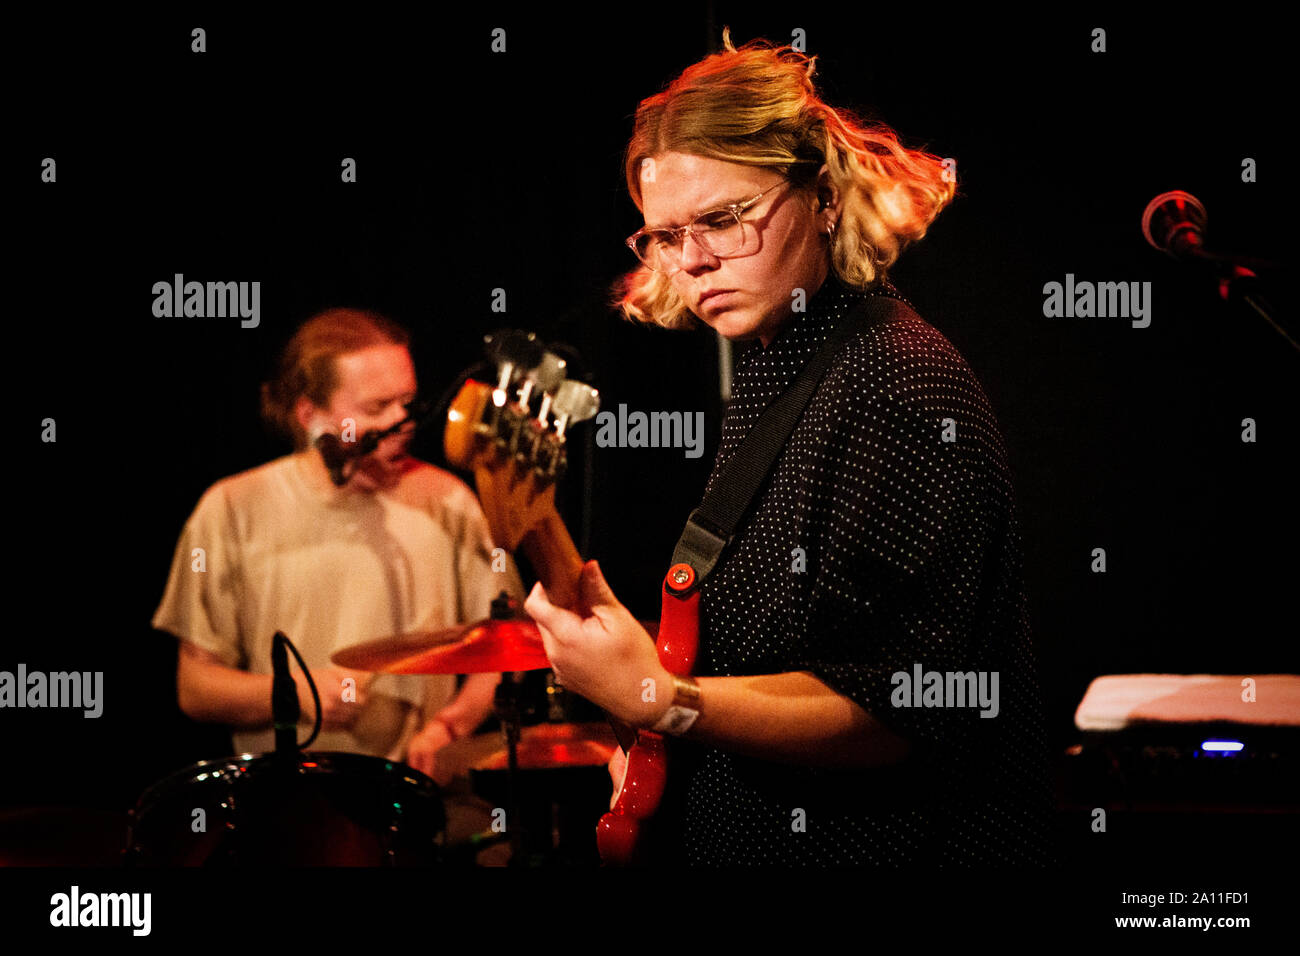 Copenhagen, Denmark. 21st, September 2019. The British band Penelope Isles performs a live concert at Ideal Bar in Copenhagen. (Photo credit: Gonzales Photo - Christian Hjorth). Stock Photo